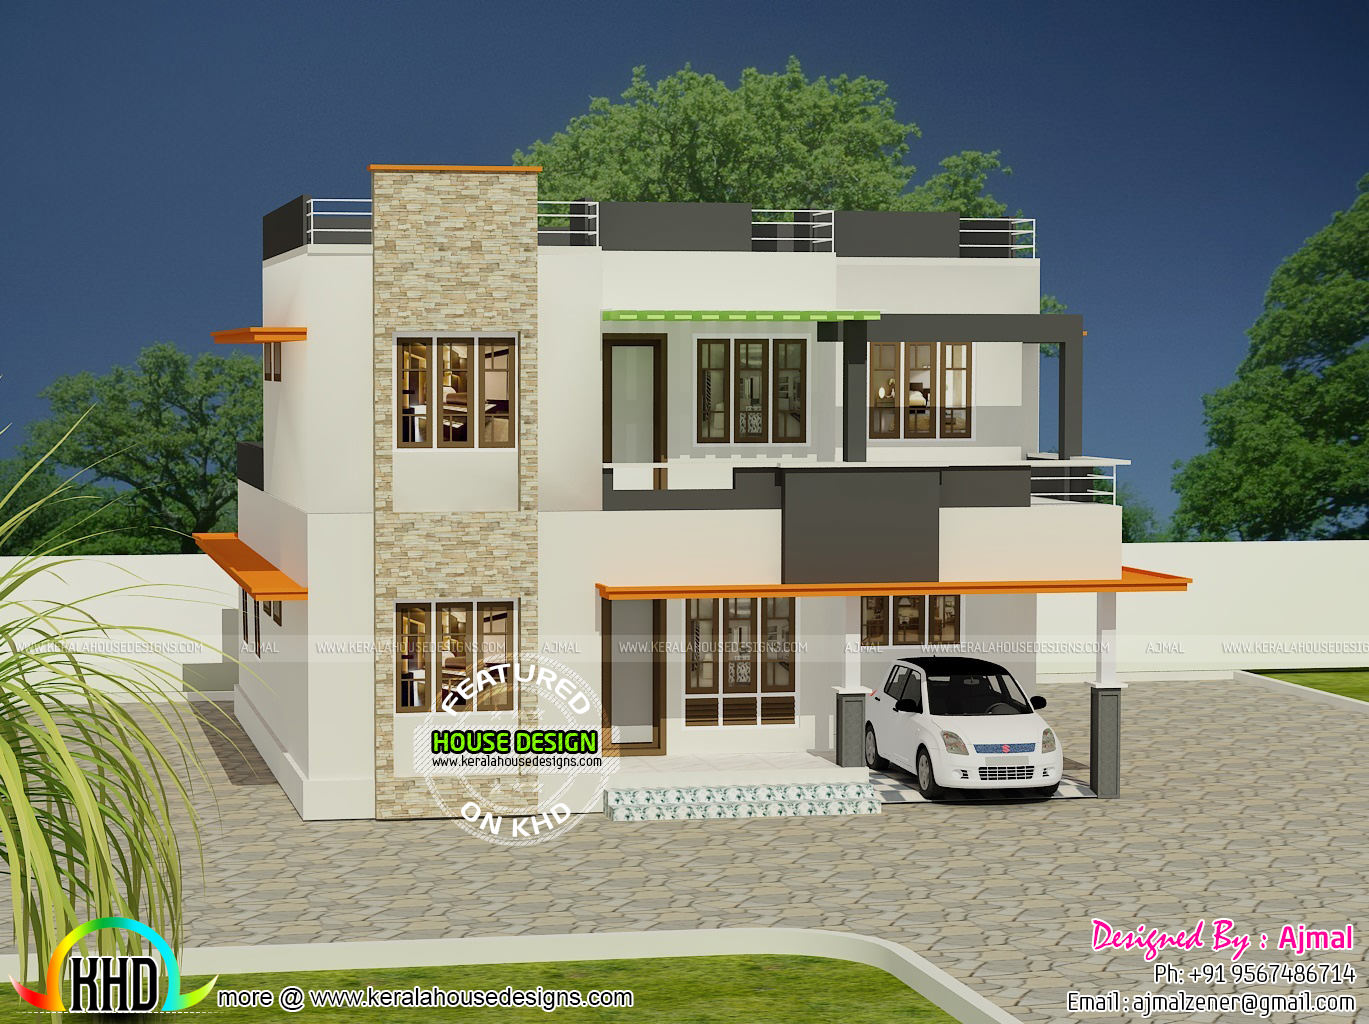 20 lakhs house in kerala kerala home design and floor plans